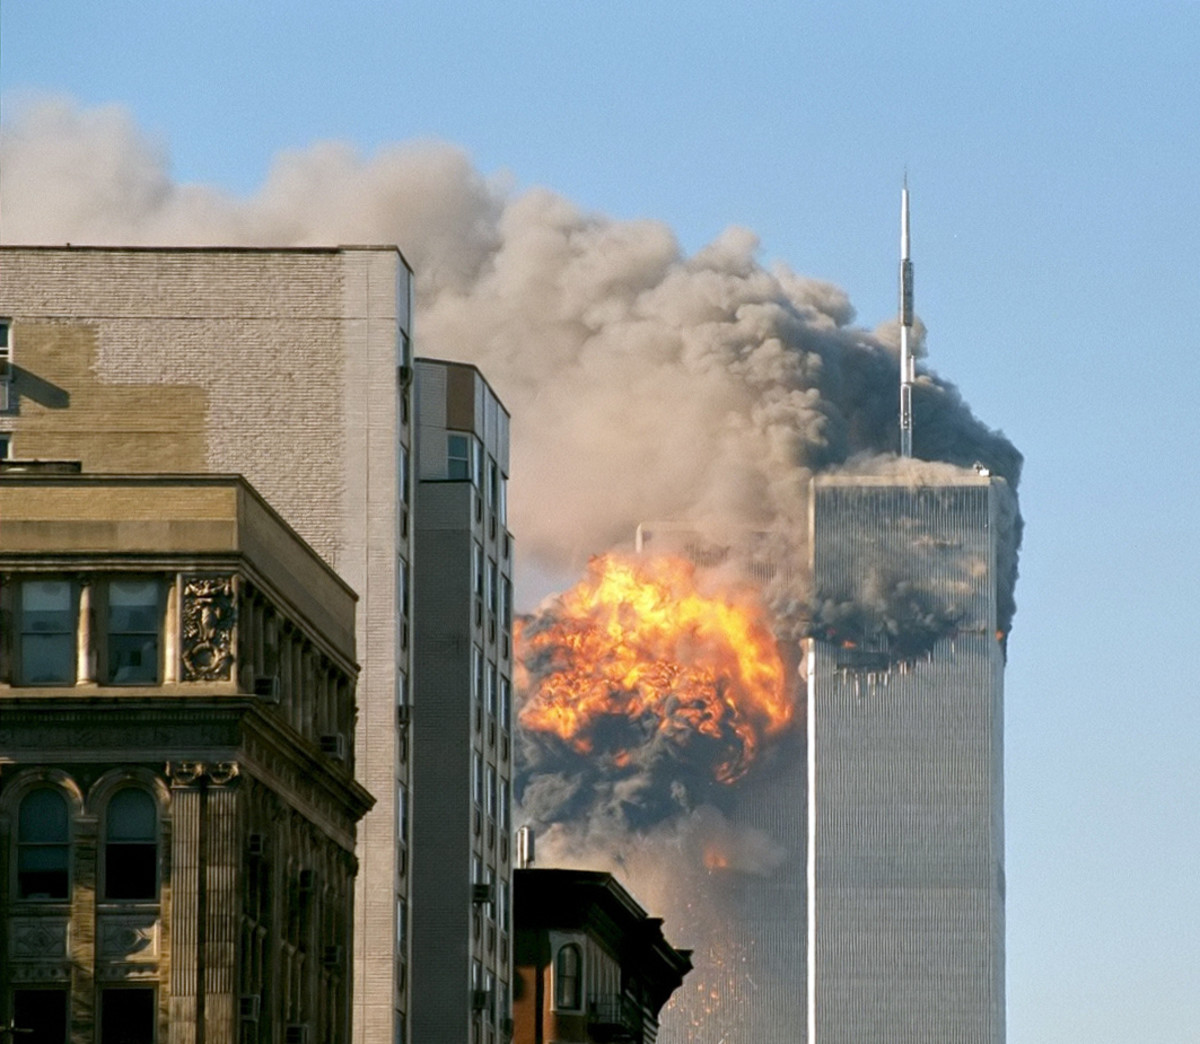 United Airlines Flight 175 crashes into the south tower of the World Trade Center complex on 09/11/01, creating an explosion that would eventually bring the tower down.